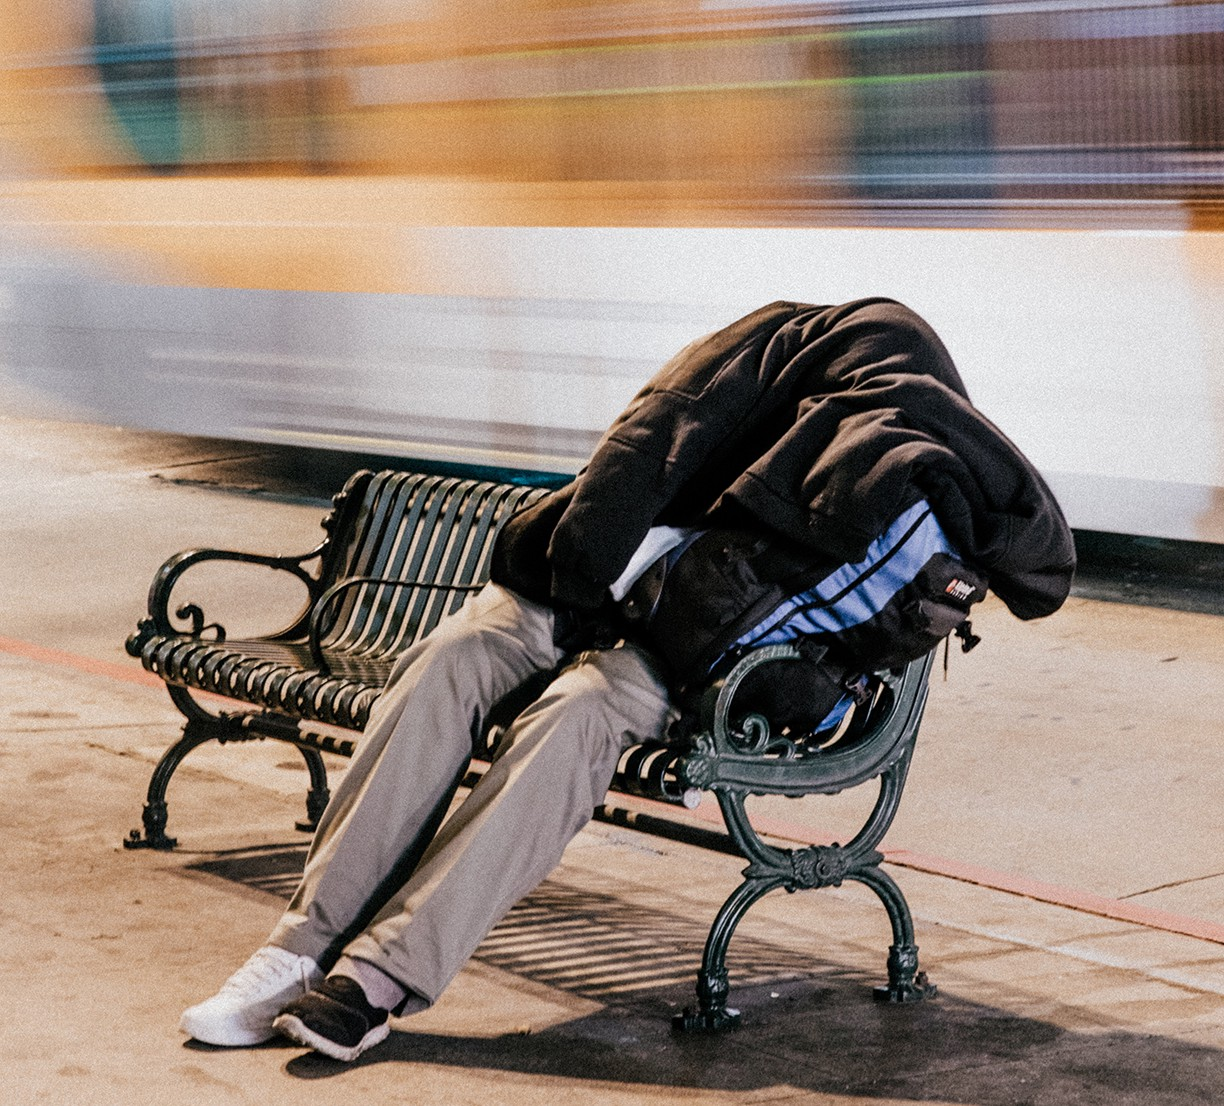 A homeless person sits on a bench, covered by a jacket.